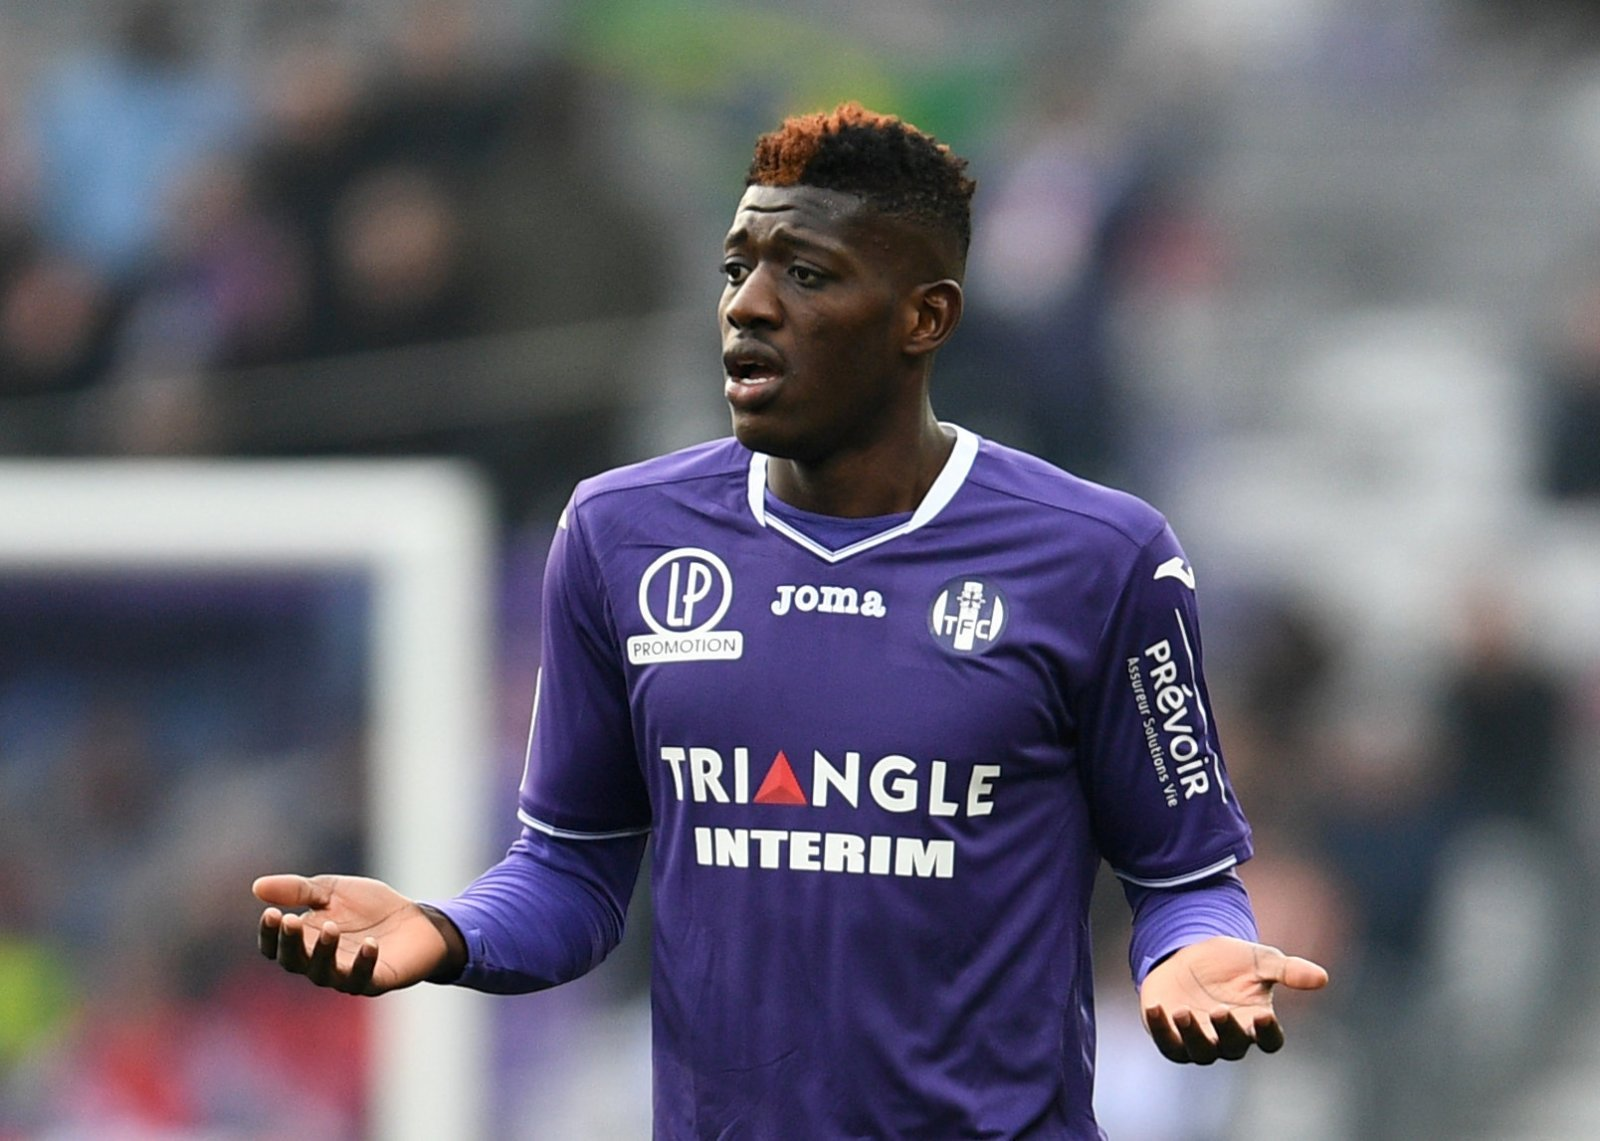 West Ham could do with a powerful midfielder like Ibrahim Sangare